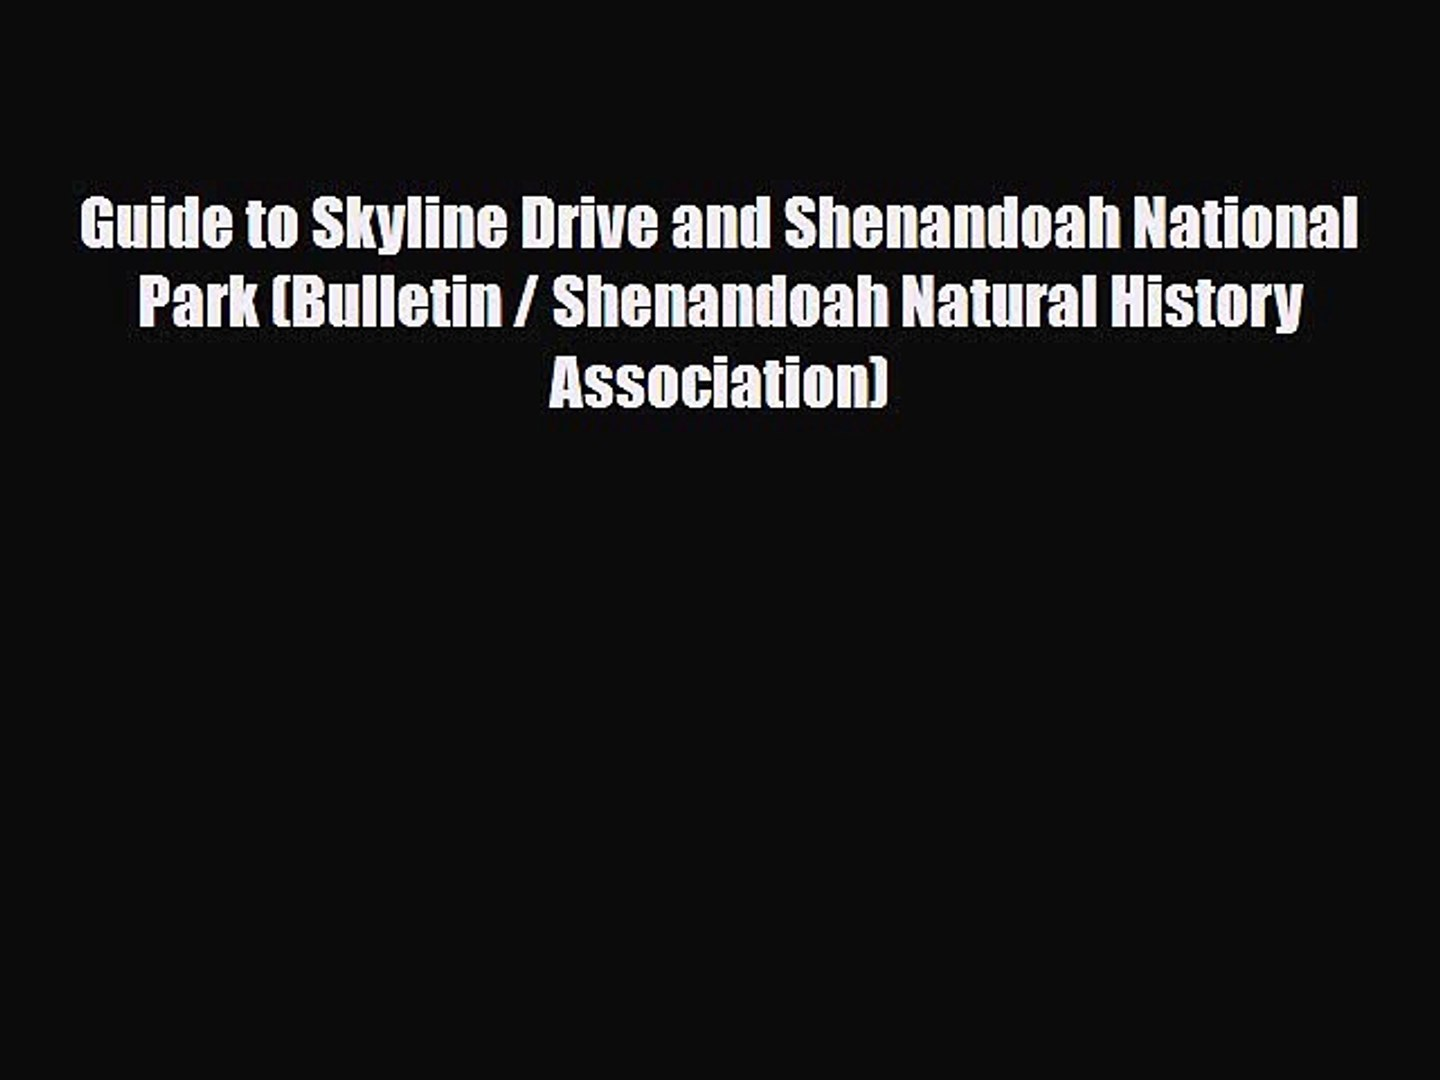 Download Guide to Skyline Drive and Shenandoah National Park (Bulletin / Shenandoah Natural